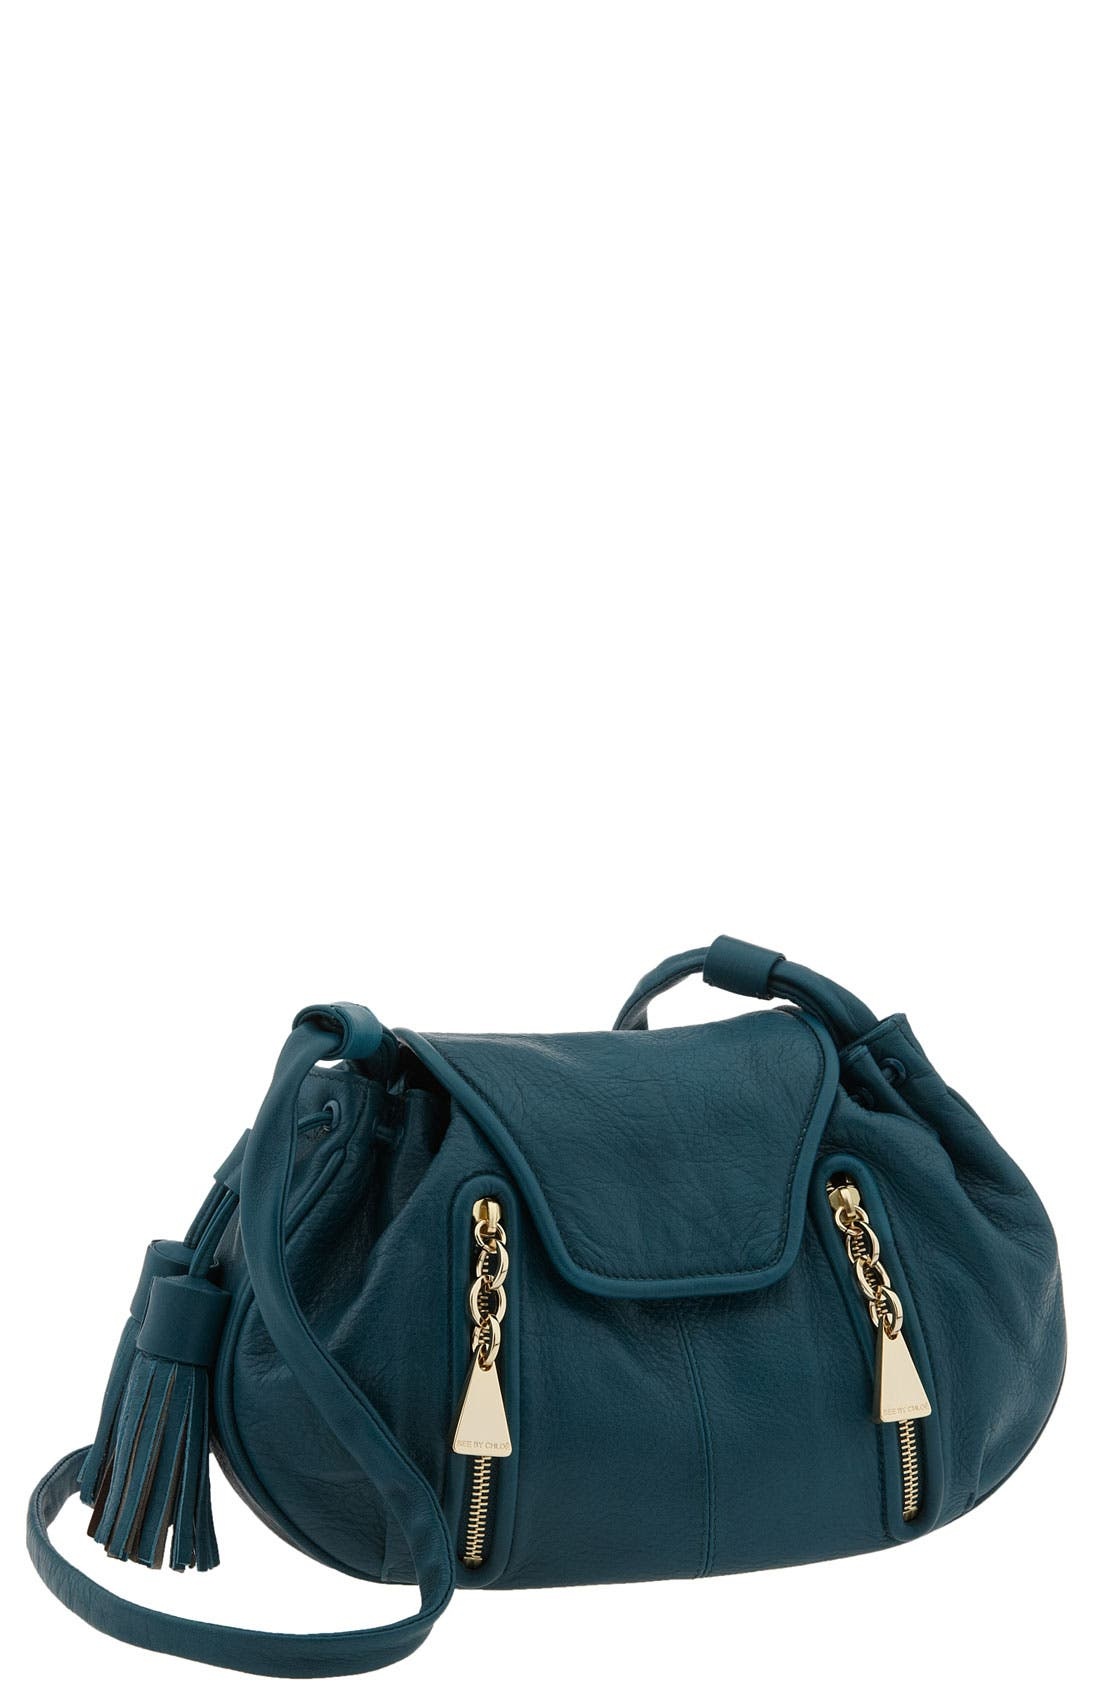 Alternate Image 1 Selected - See By Chloé Slouchy Drawstring Crossbody Bag